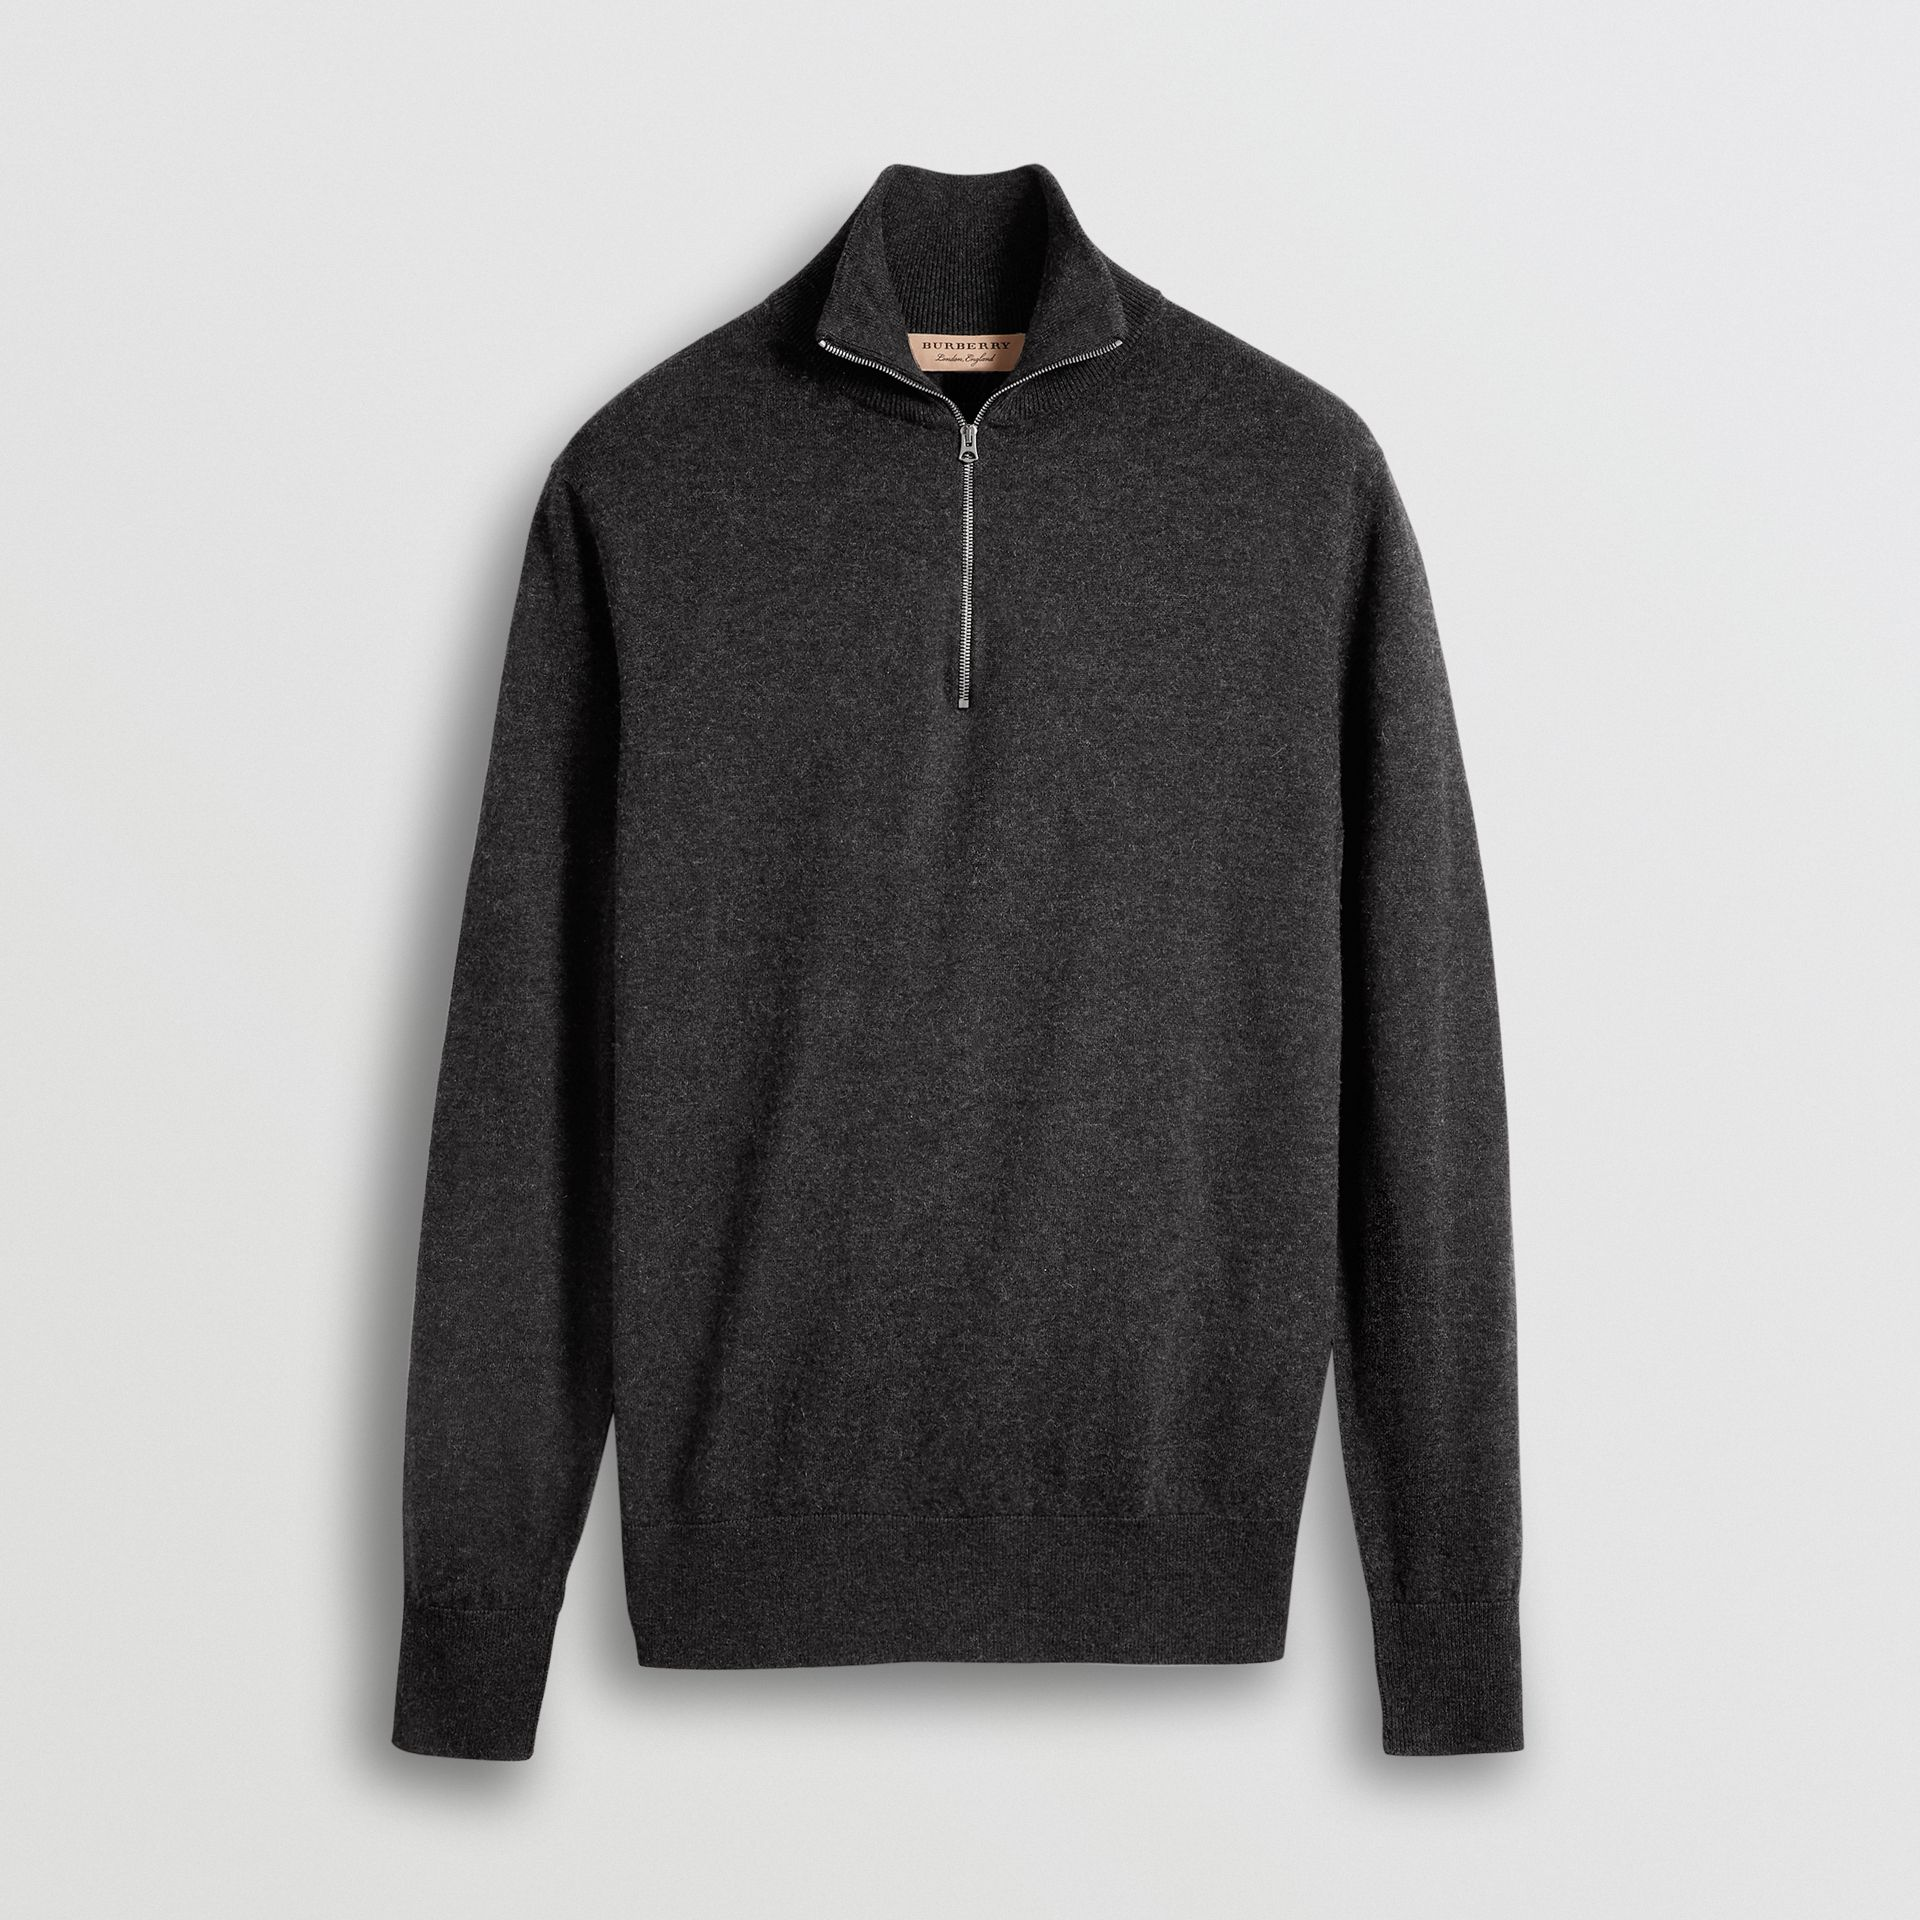 Zip-neck Cashmere Cotton Sweater in Charcoal - Men | Burberry United States - gallery image 3